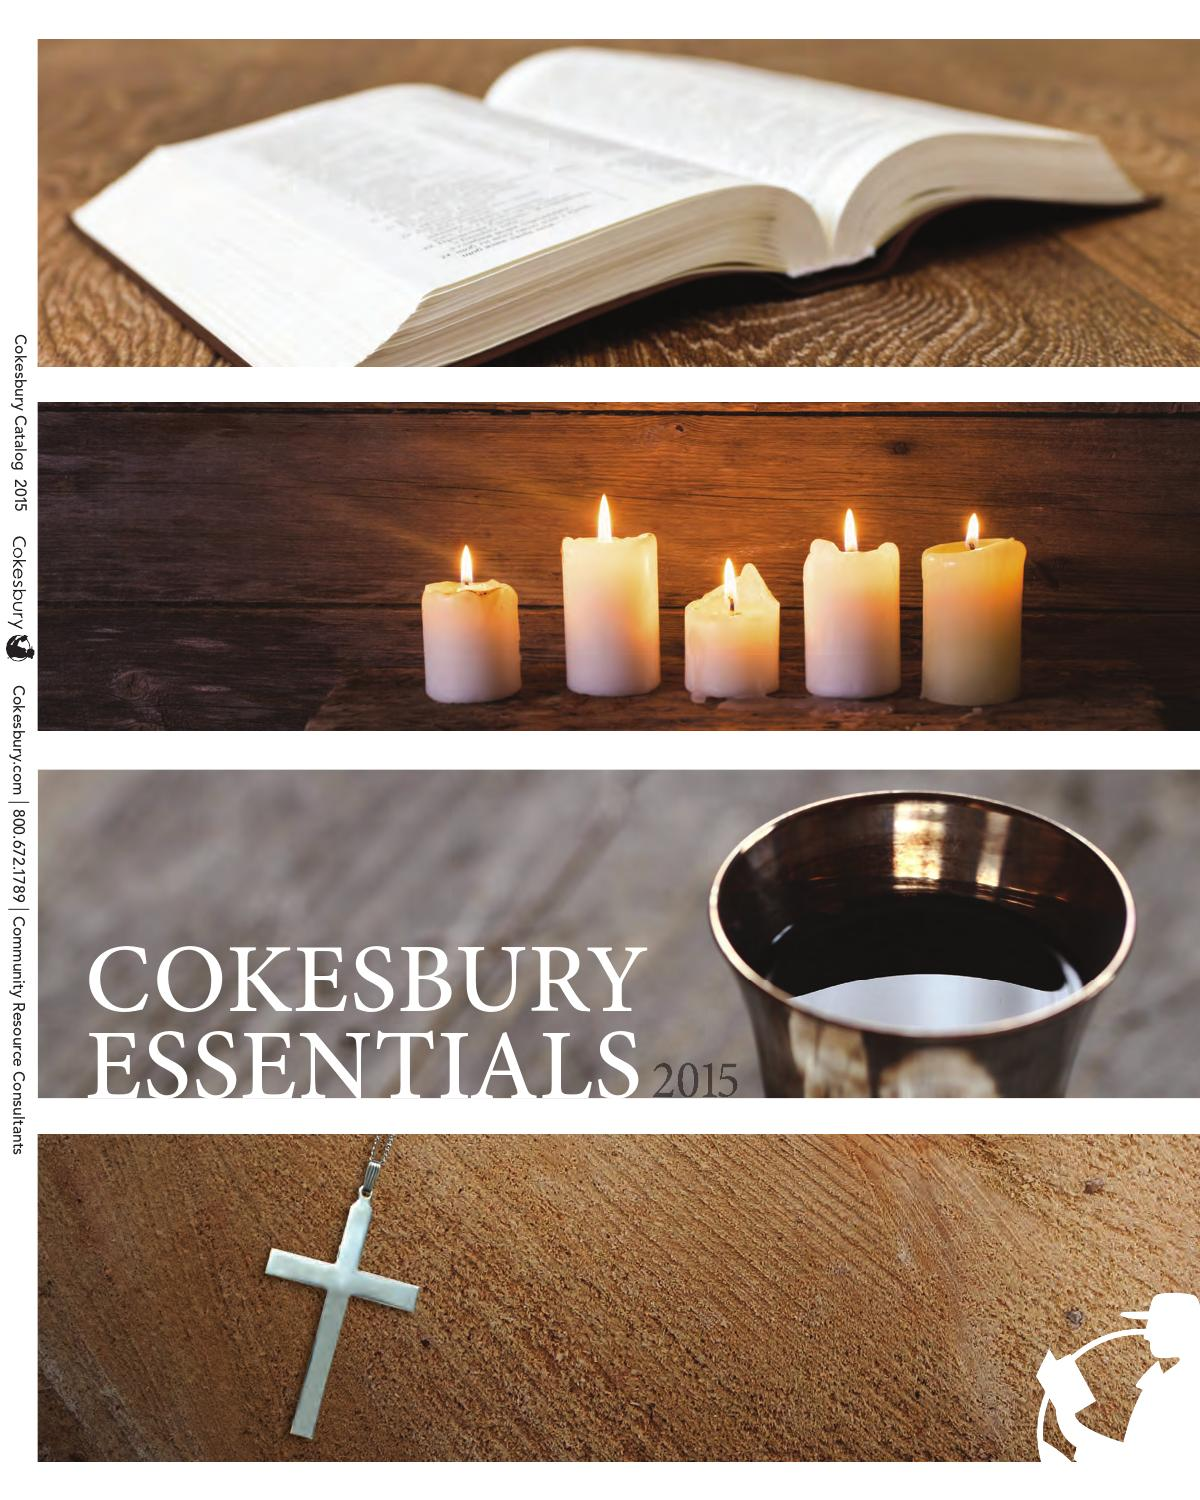 Cokesbury 2015 essential resources catalog by united methodist cokesbury 2015 essential resources catalog by united methodist publishing house cokesbury issuu fandeluxe Image collections